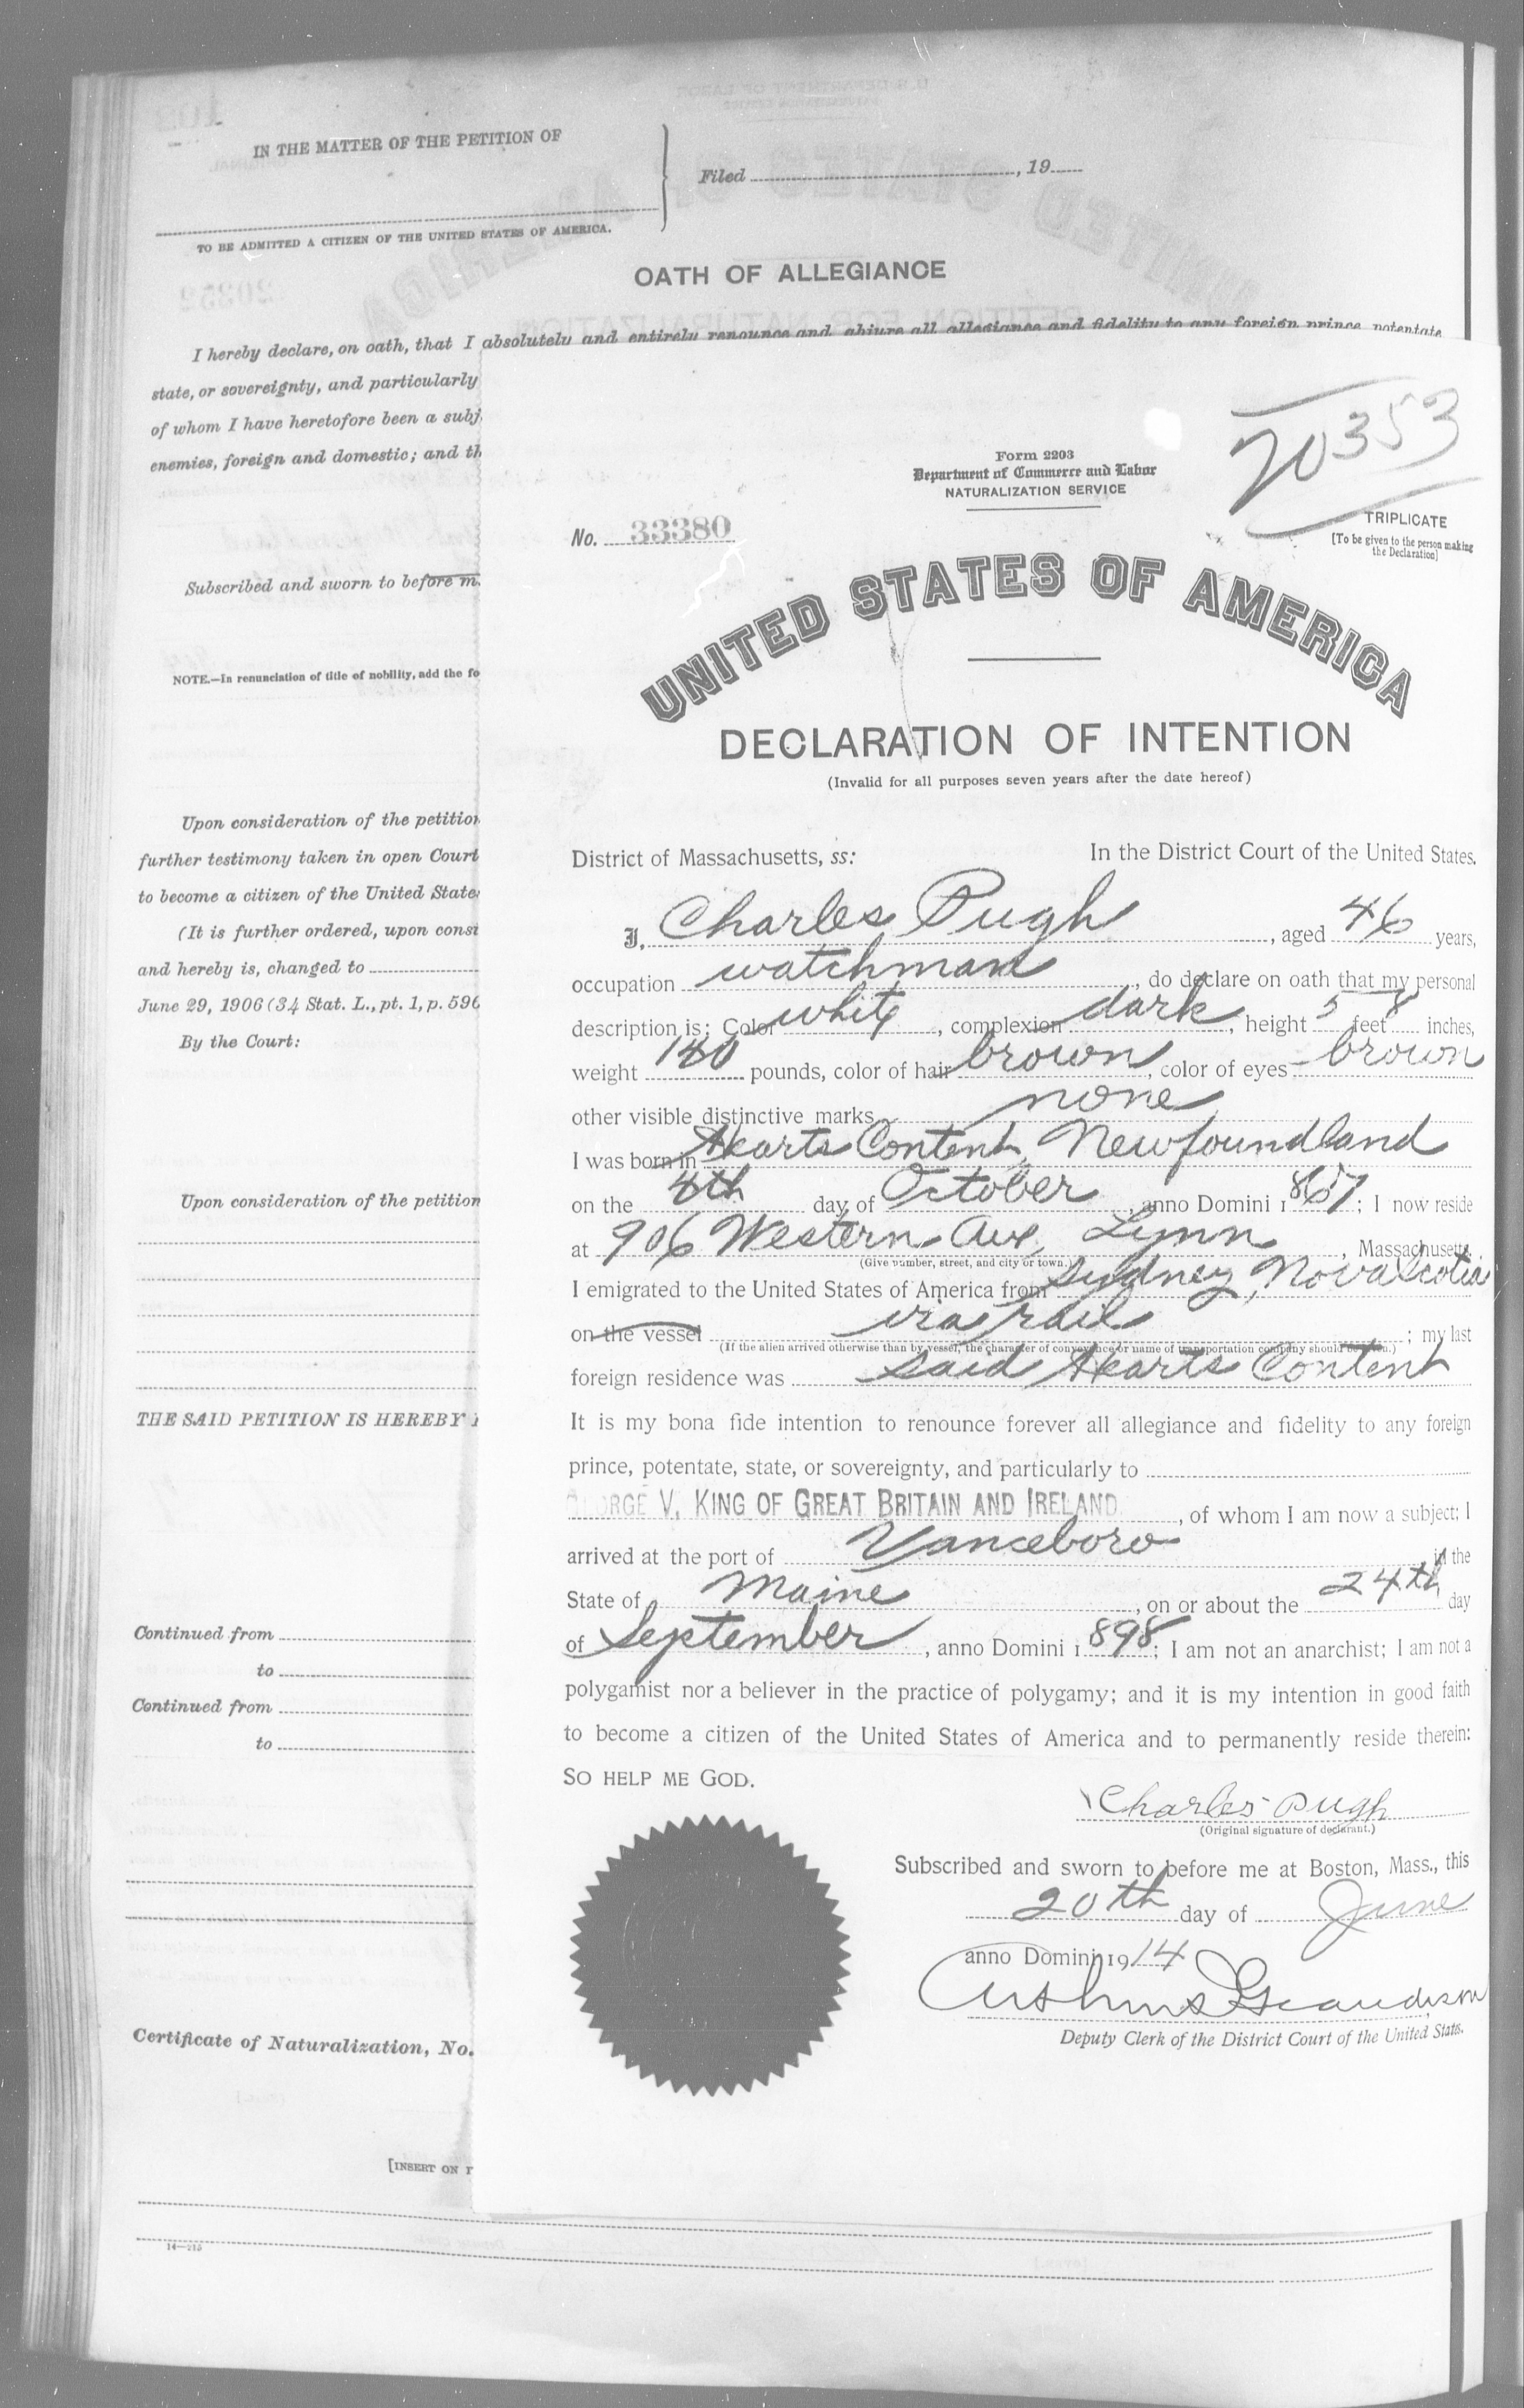 Petition for Naturalization of Charles Pugh